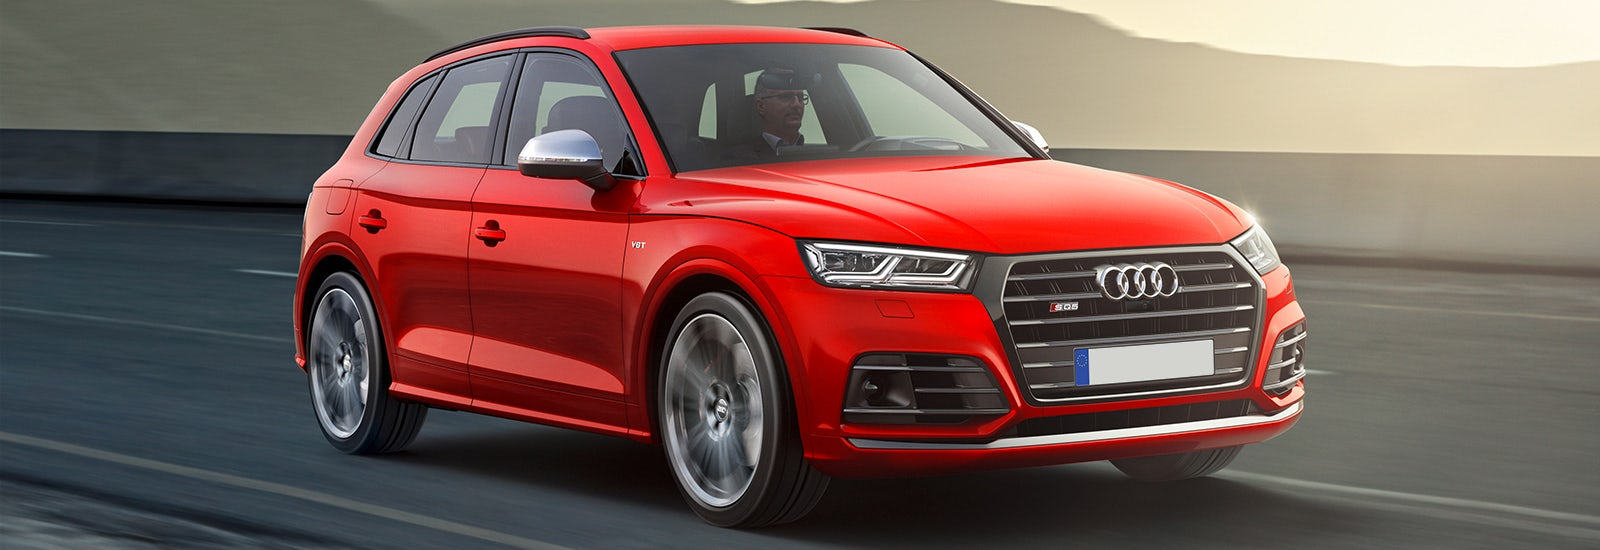 Audi Sq5 Shown Throughout Rs Q5 Will Look Even Sportier When It Arrives